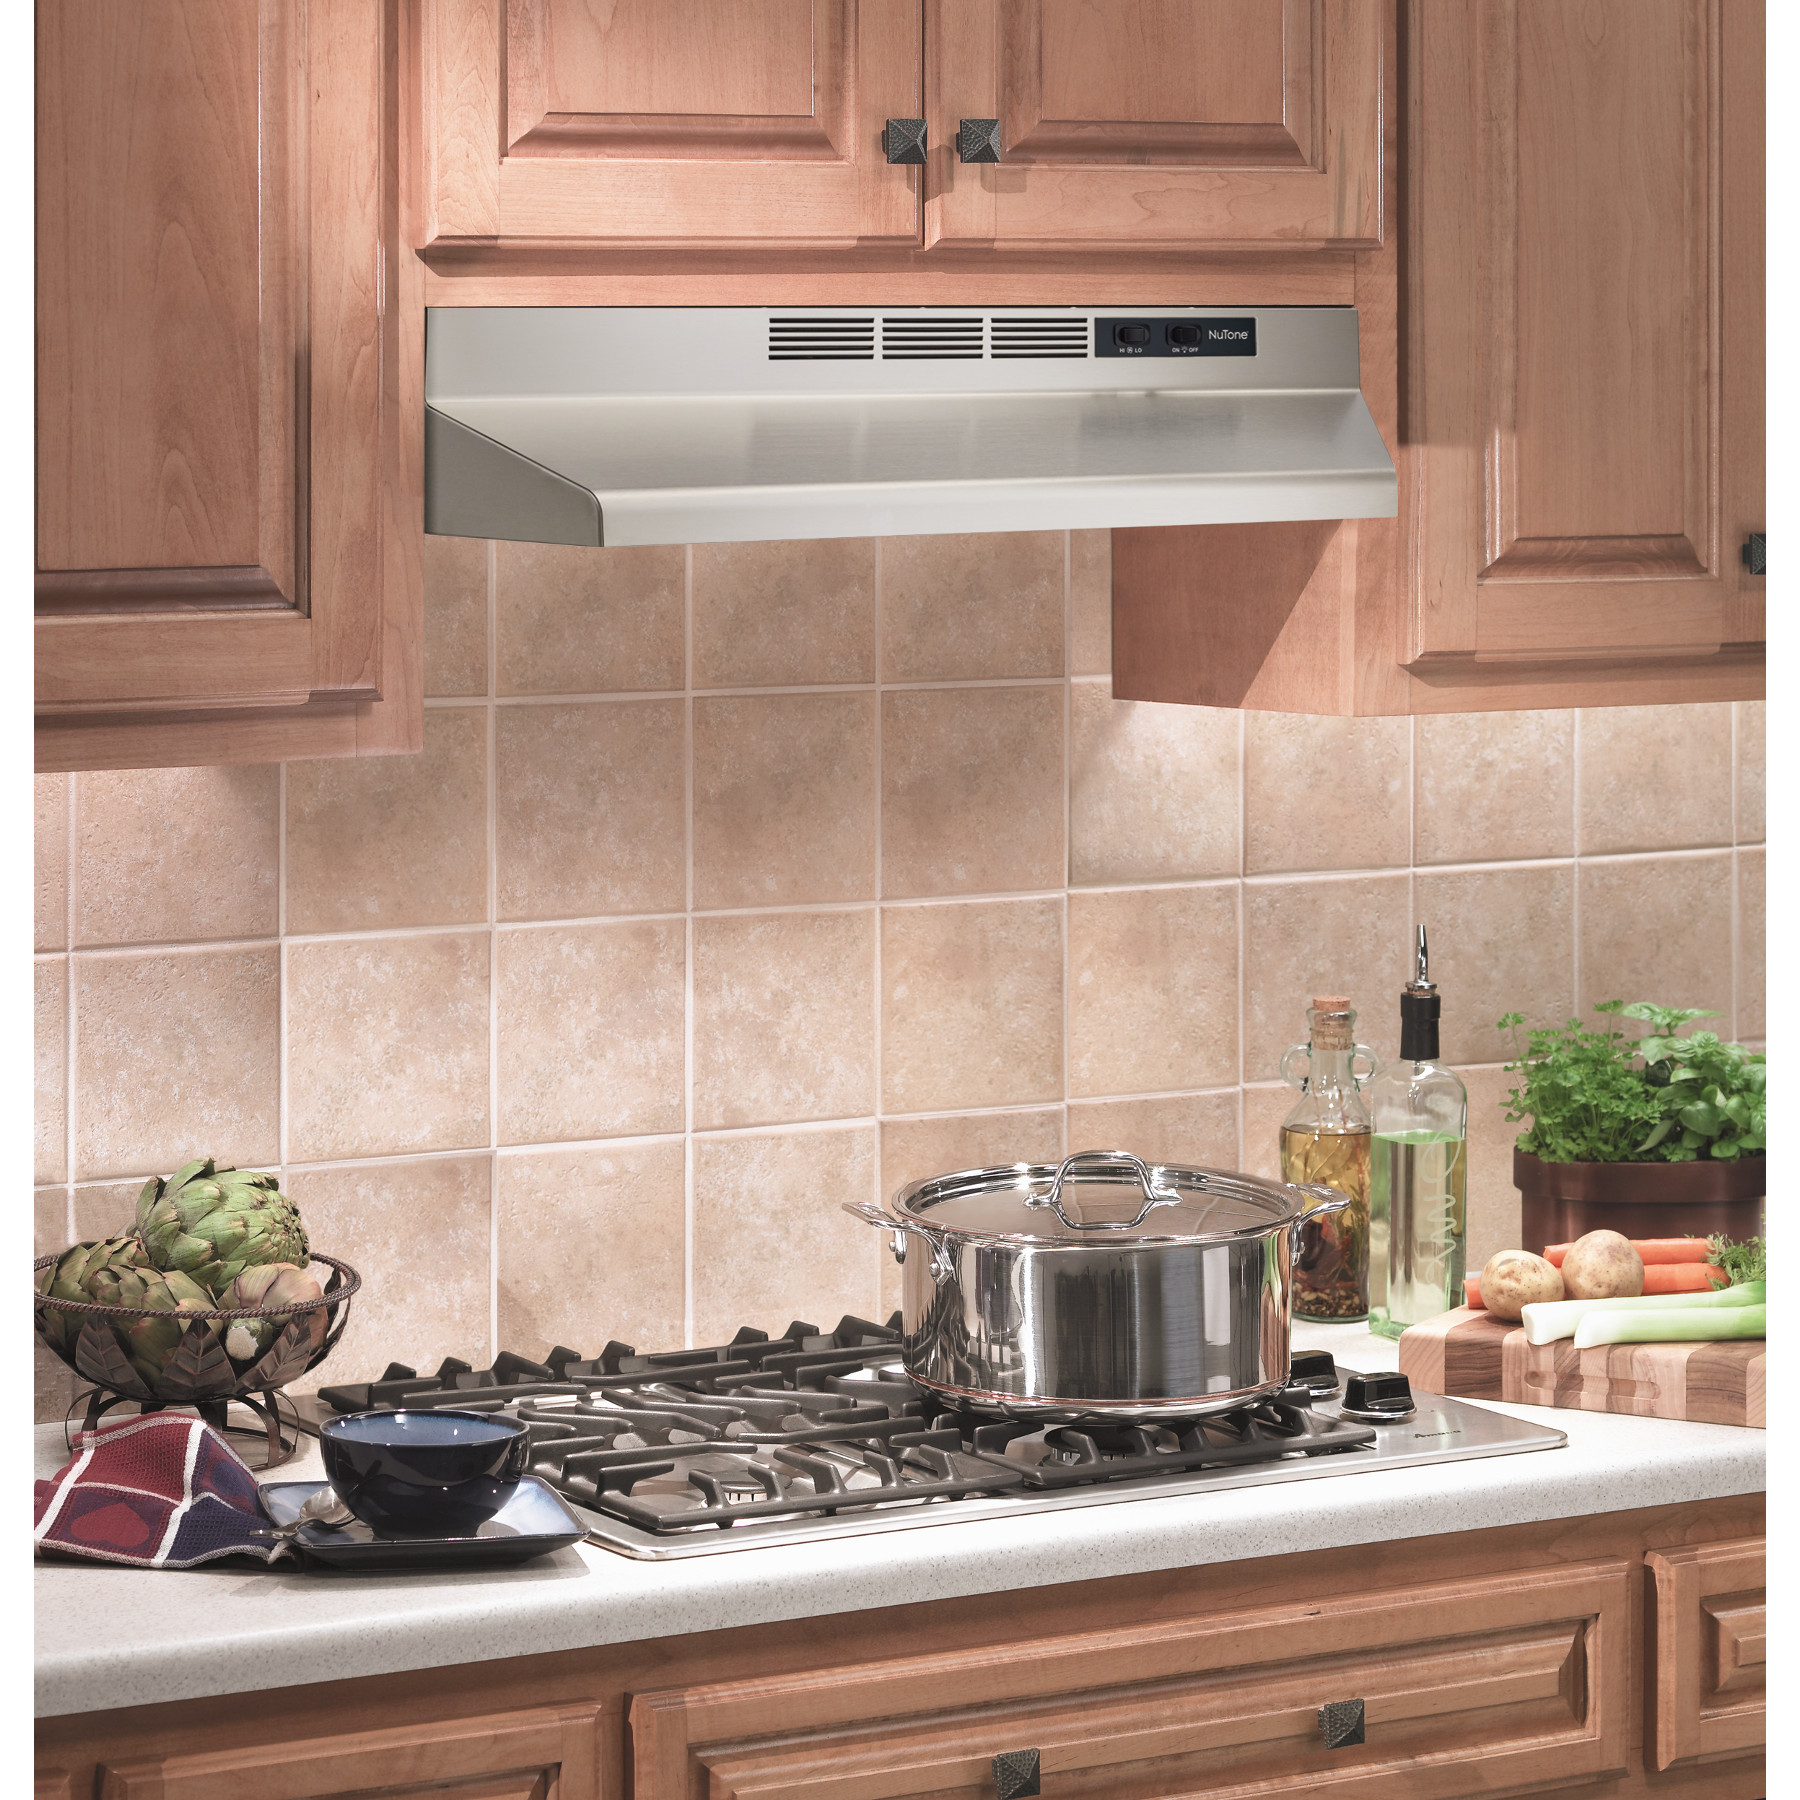 Rl6230ss Nutone 30 Ductless Under Cabinet Range Hood W Light Stainless Steel